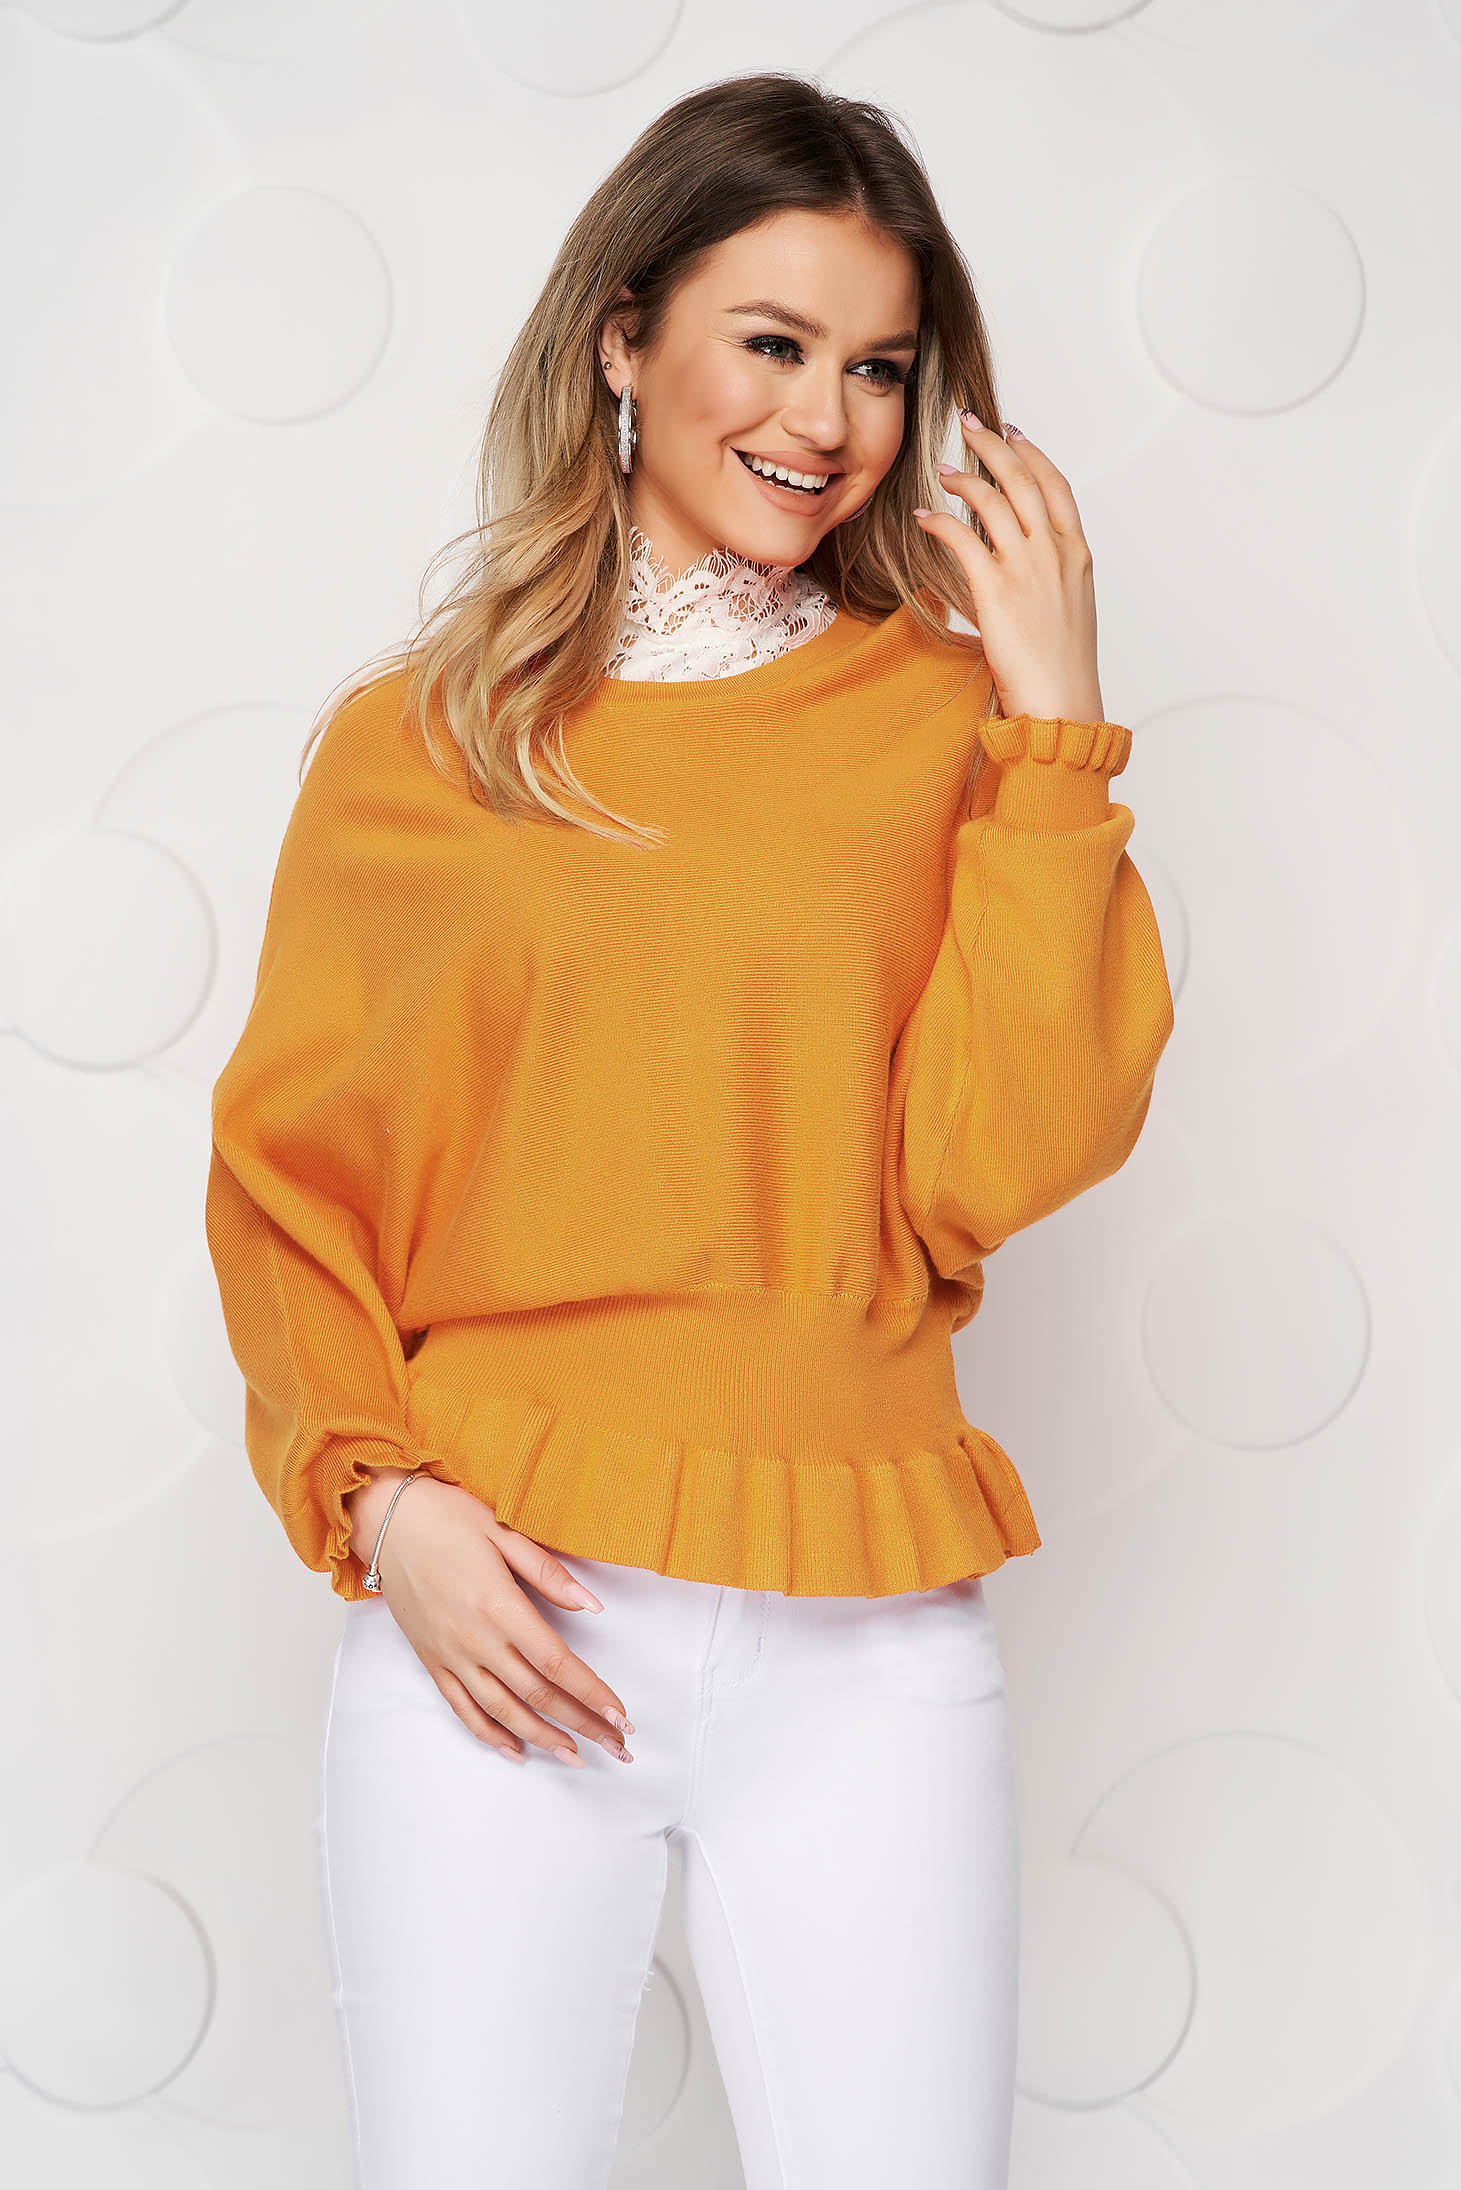 Mustard women`s blouse casual knitted from elastic and fine fabric from striped fabric with ruffle details